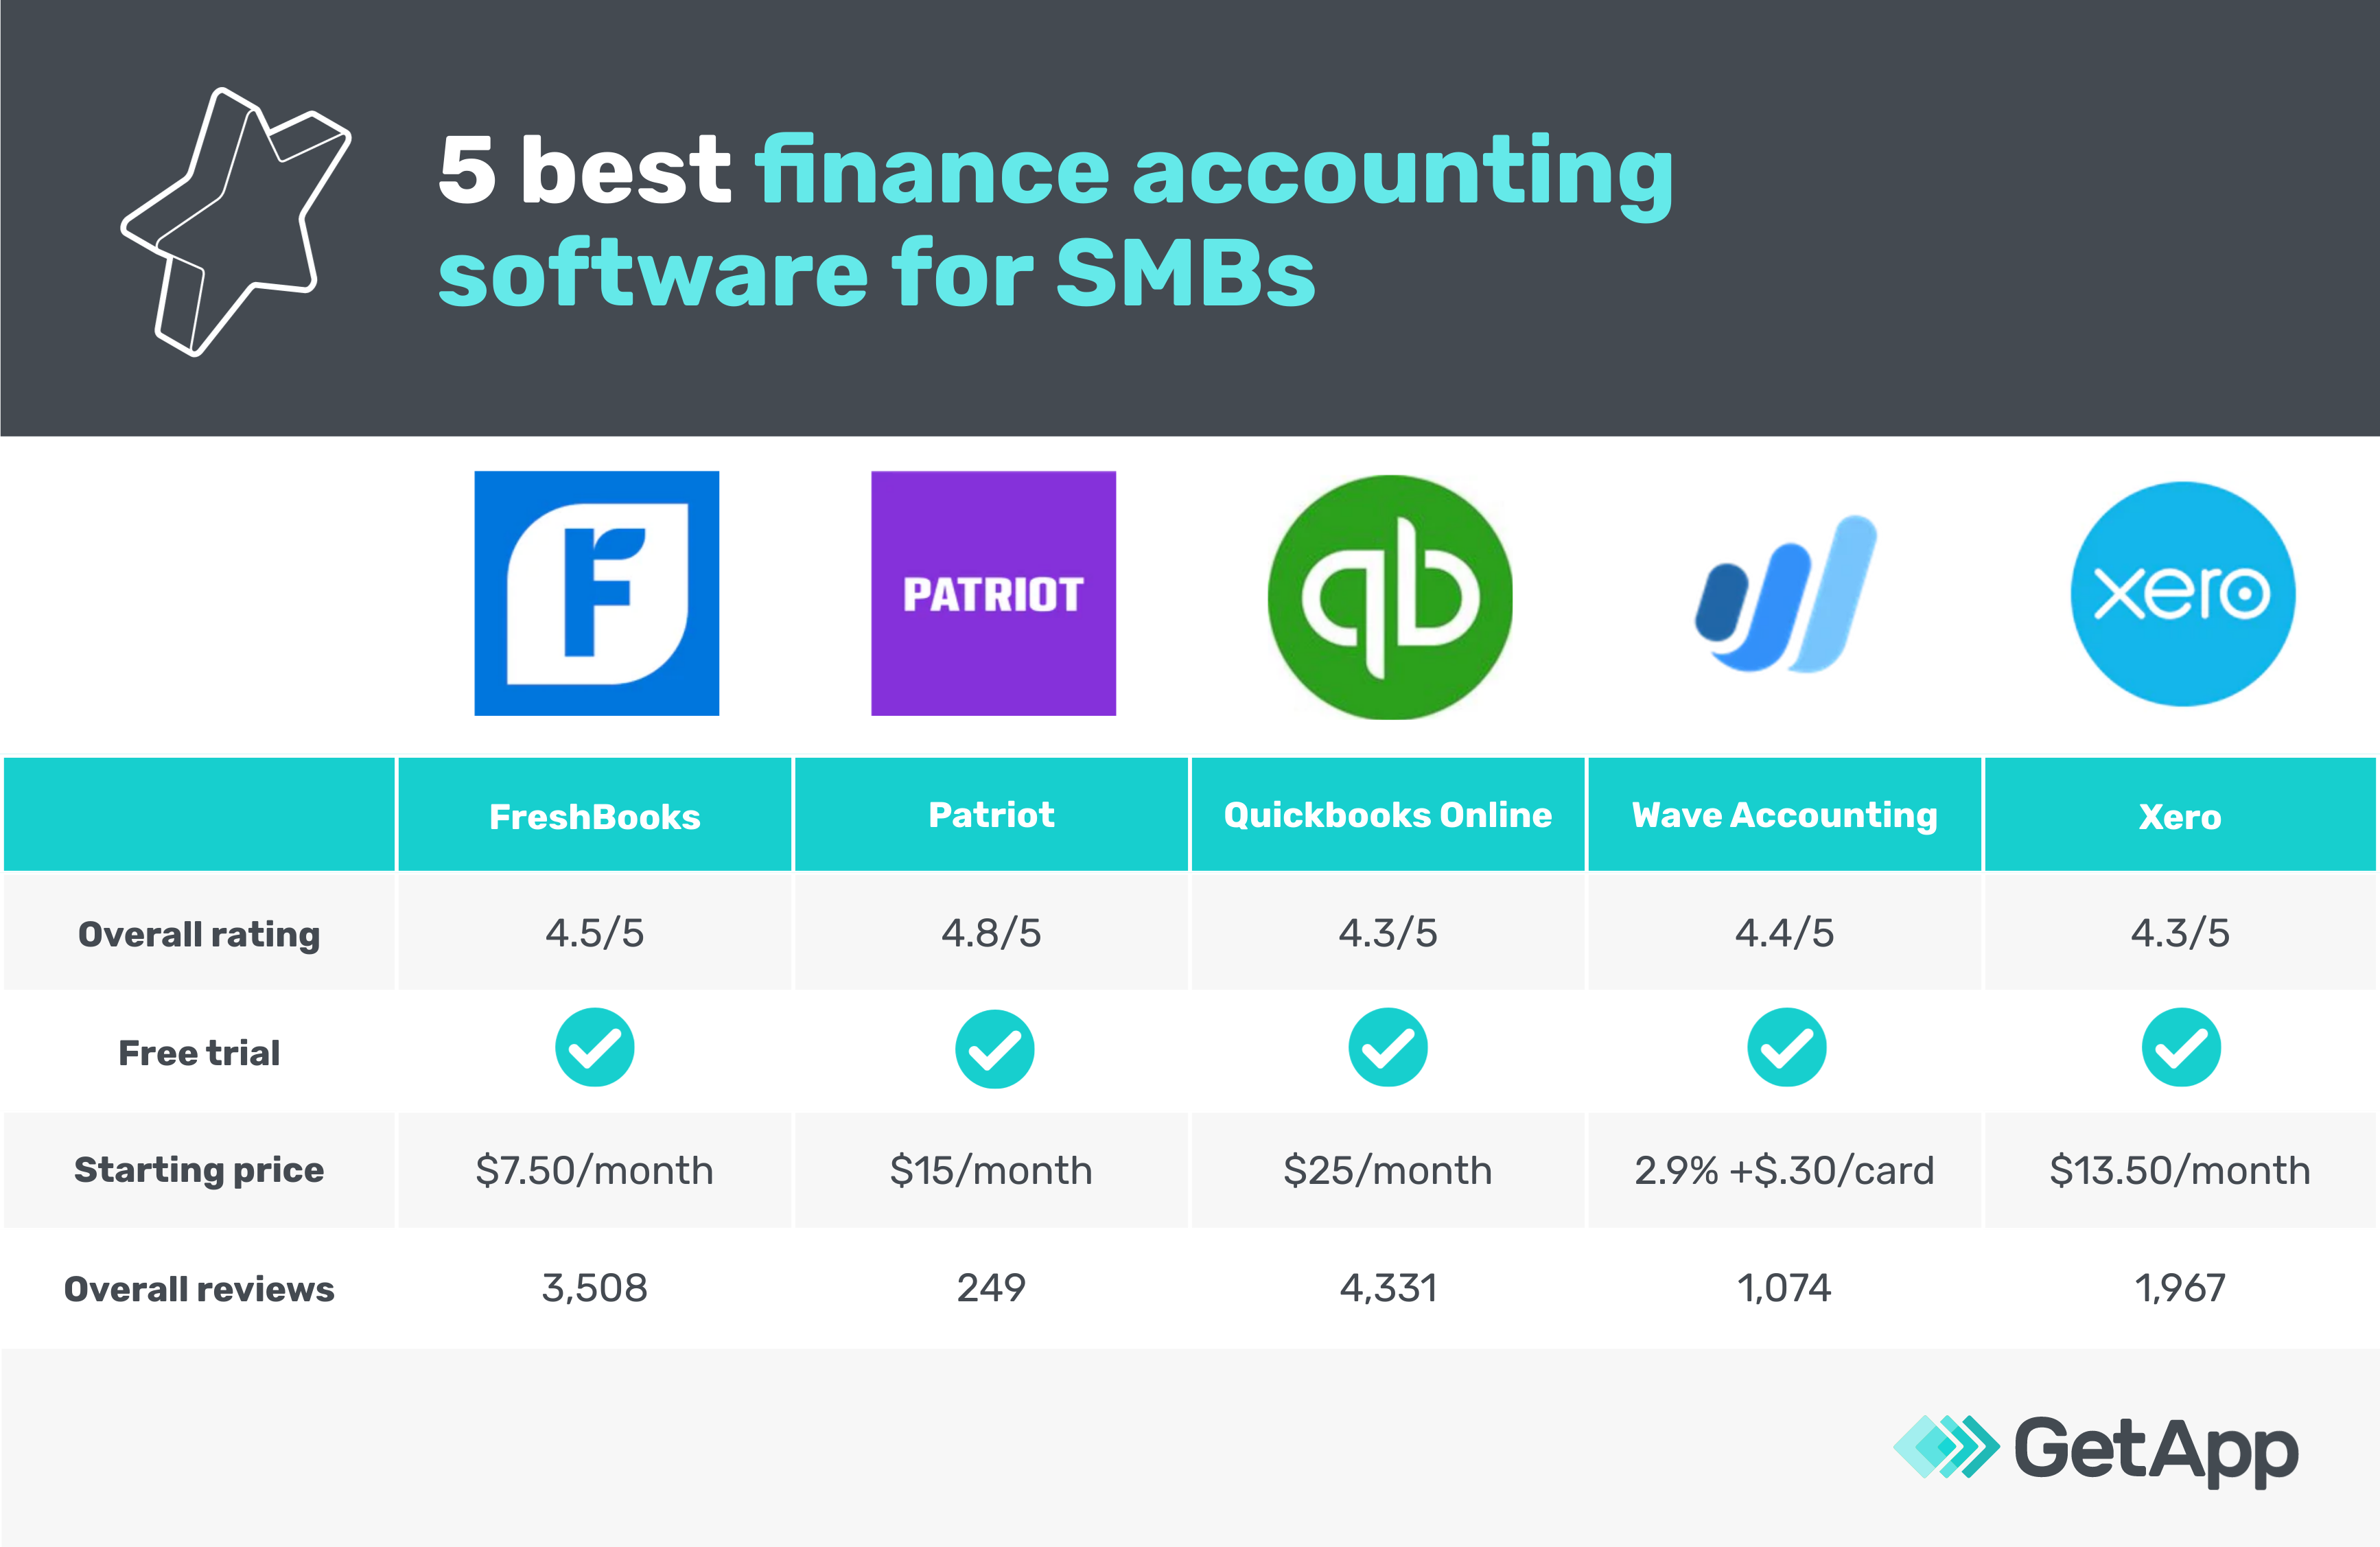 5 Best Finance Accounting Software for SMBs